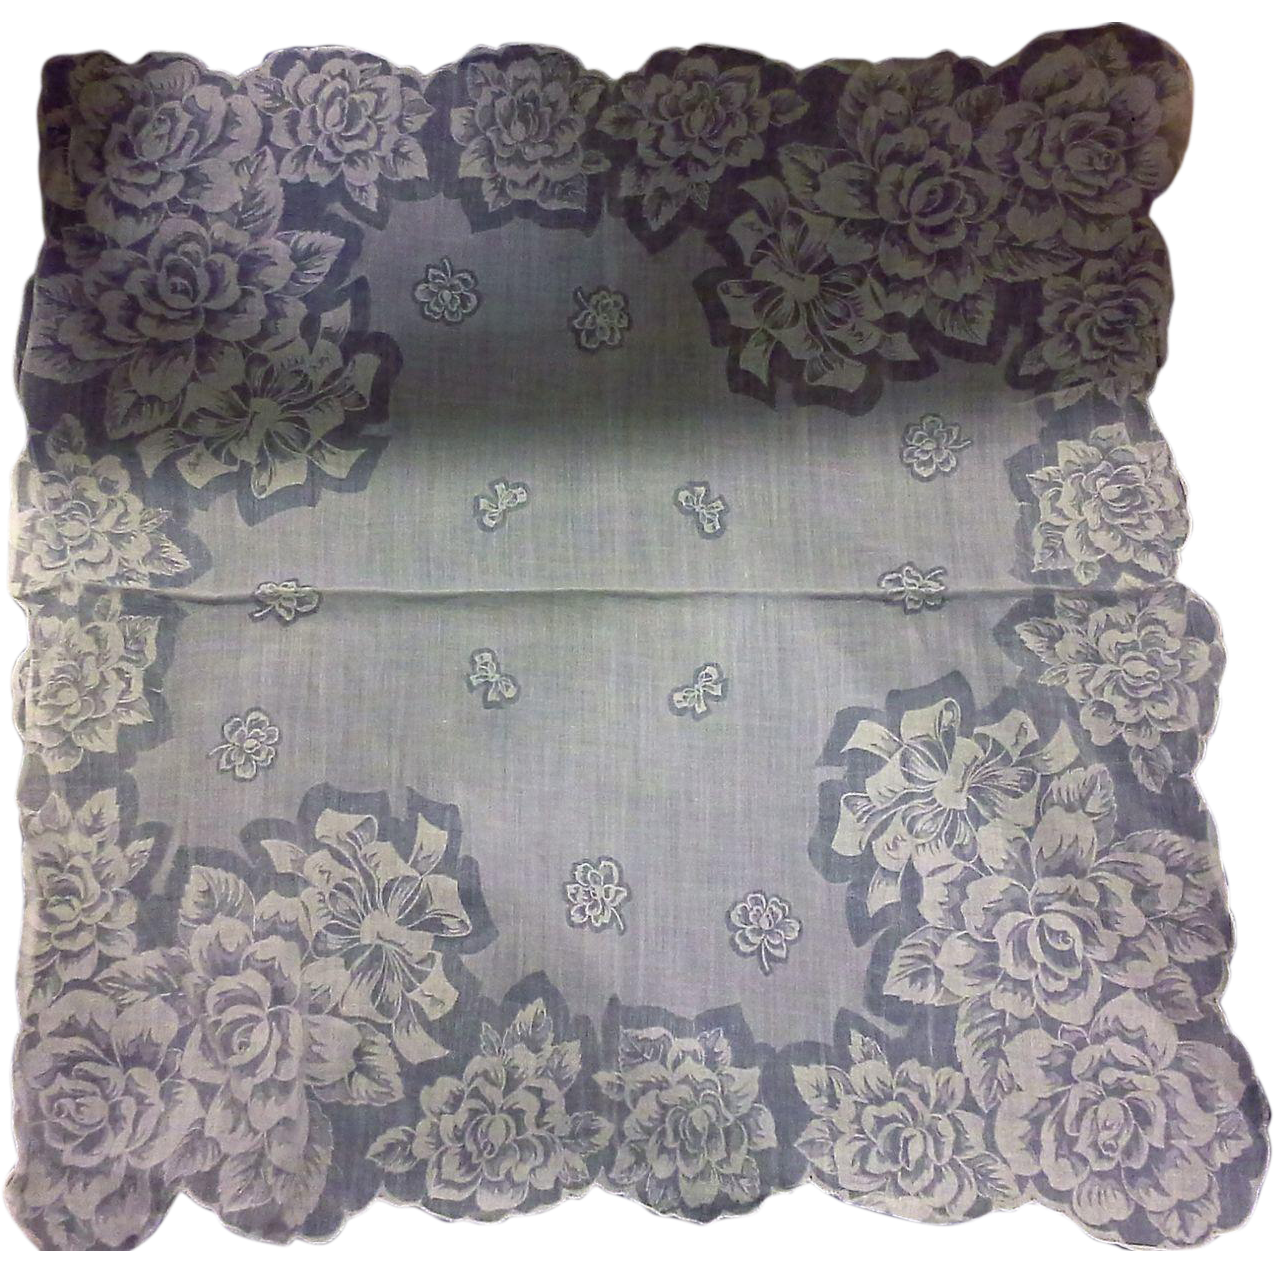 White Roses Printed Scalloped Handkerchief Hanky